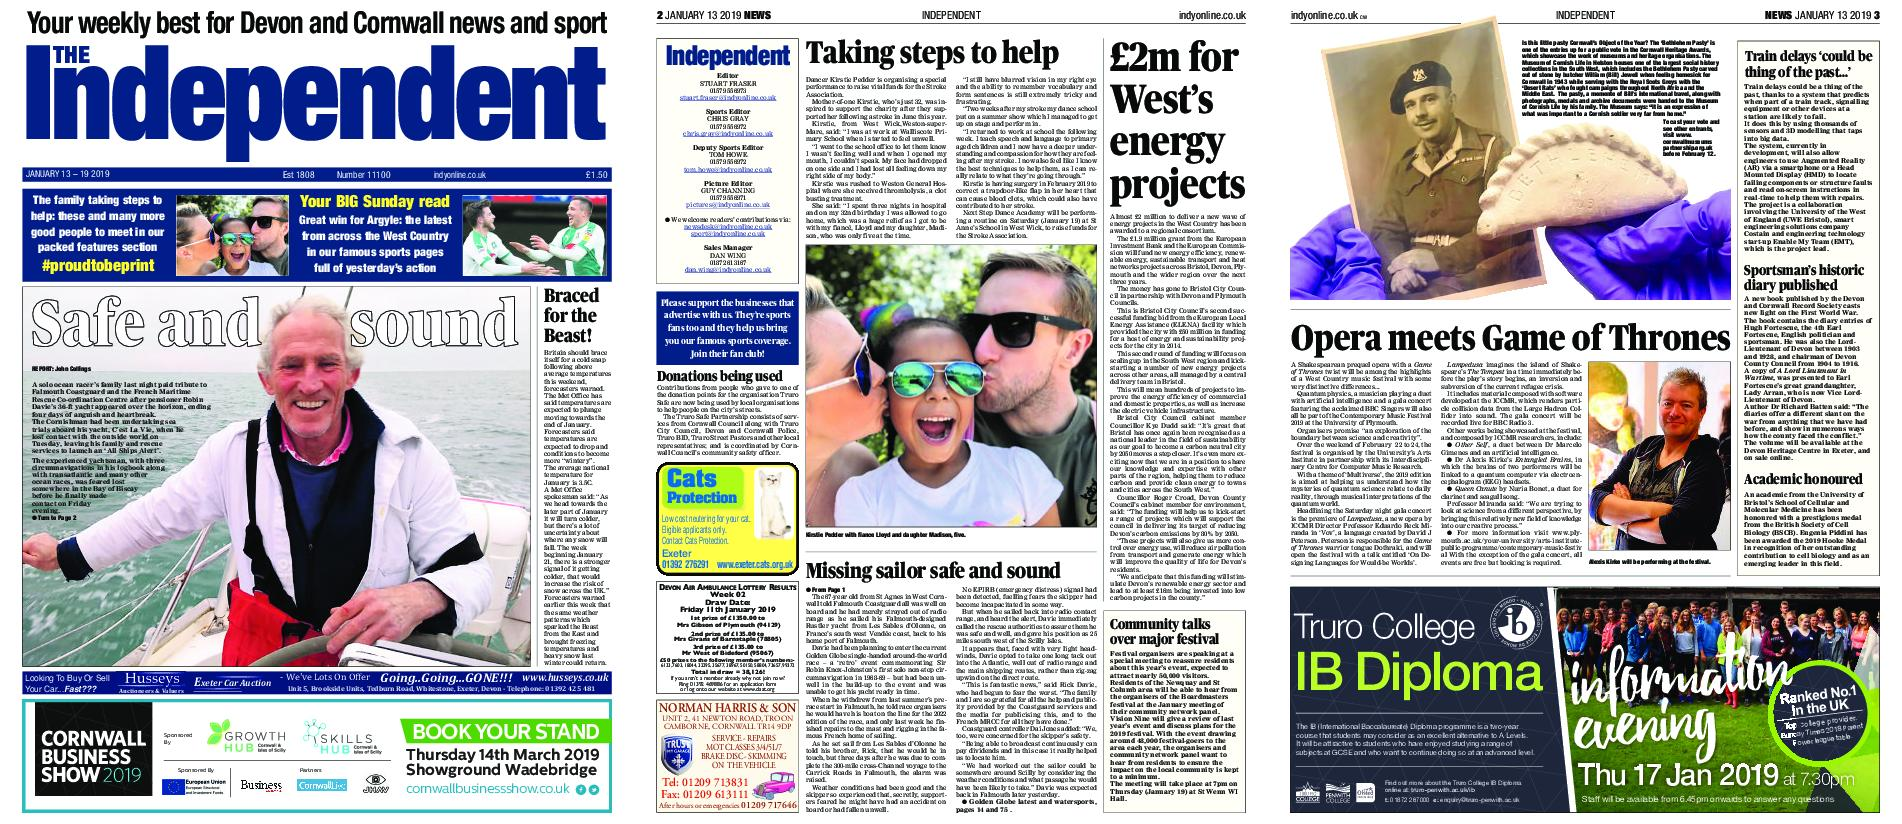 Sunday Independent Plymouth – January 13, 2019